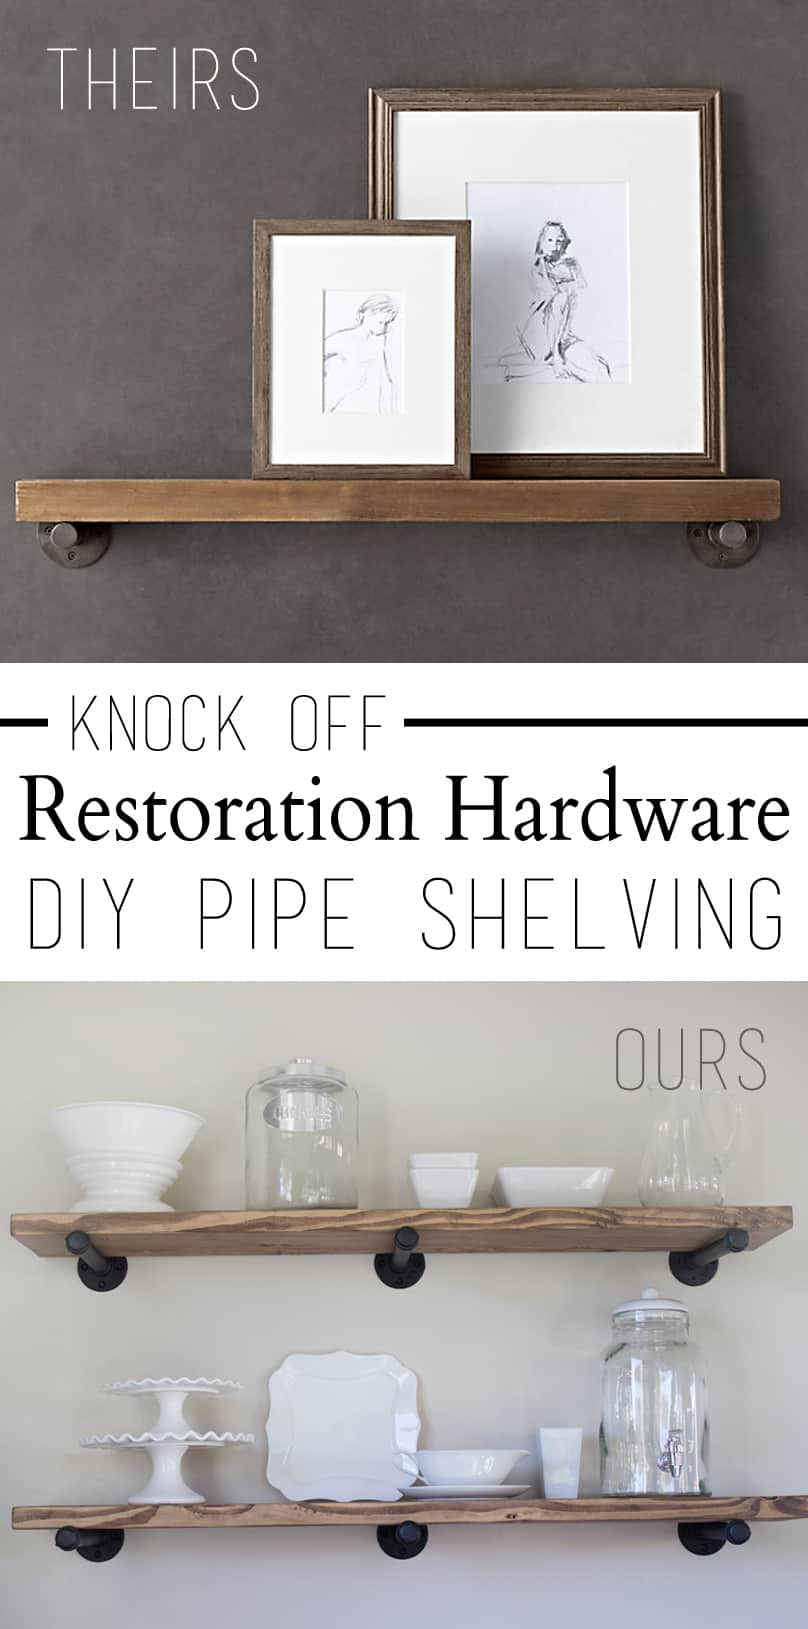 Diy Pipe Shelving